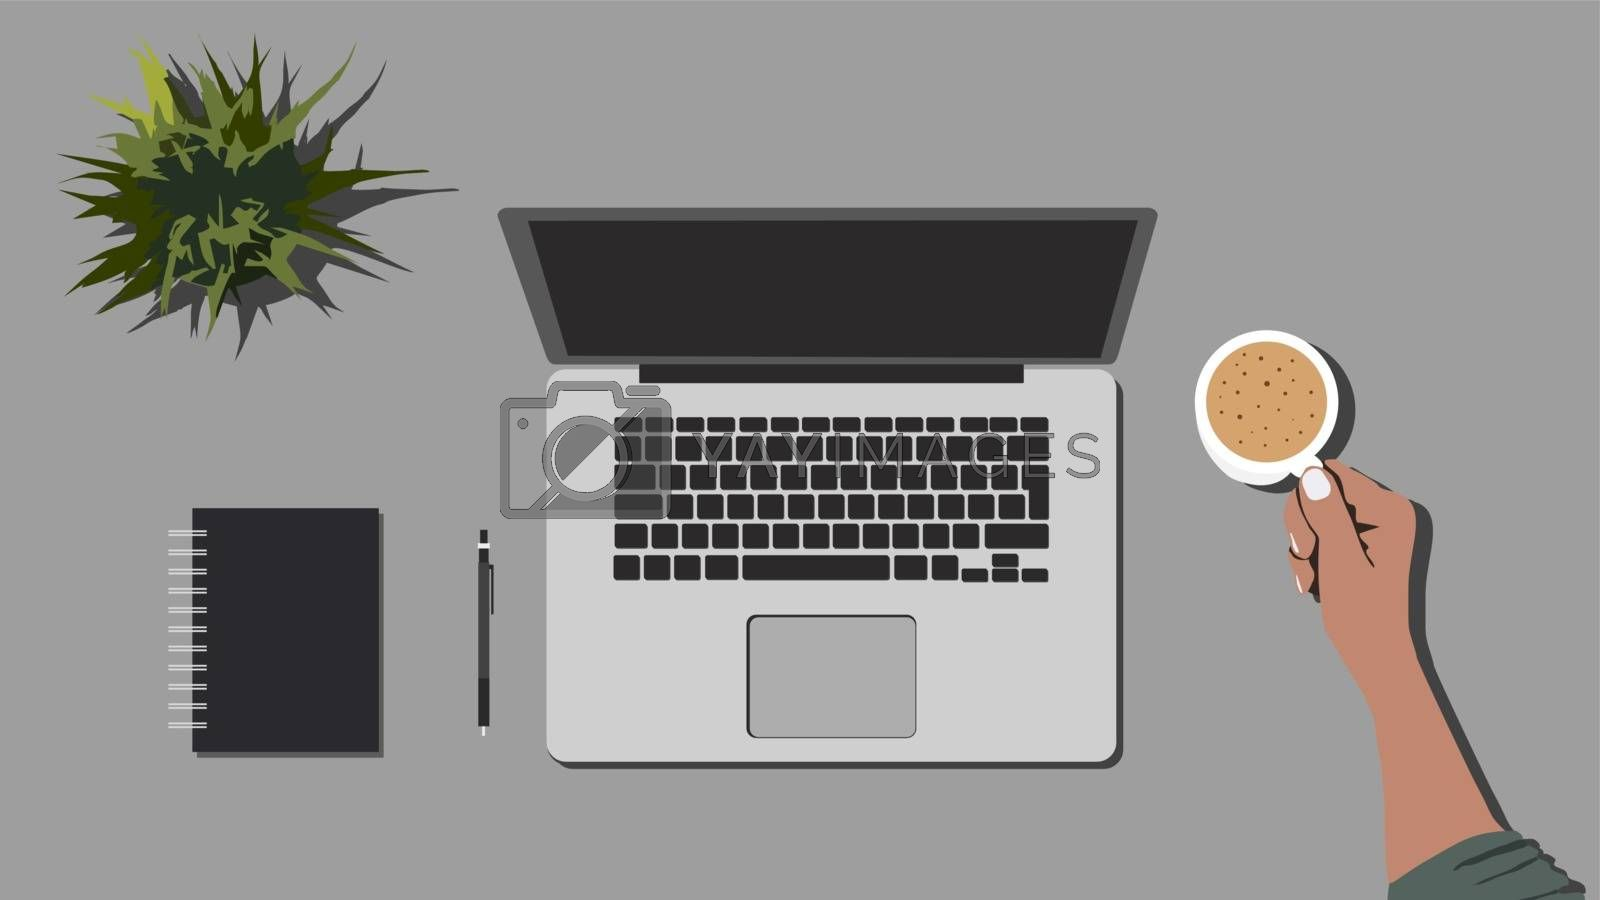 Top view of freelance workplace. Laptop, diary, pen, plant and cup of coffee. Man's hands holding cup of coffee.